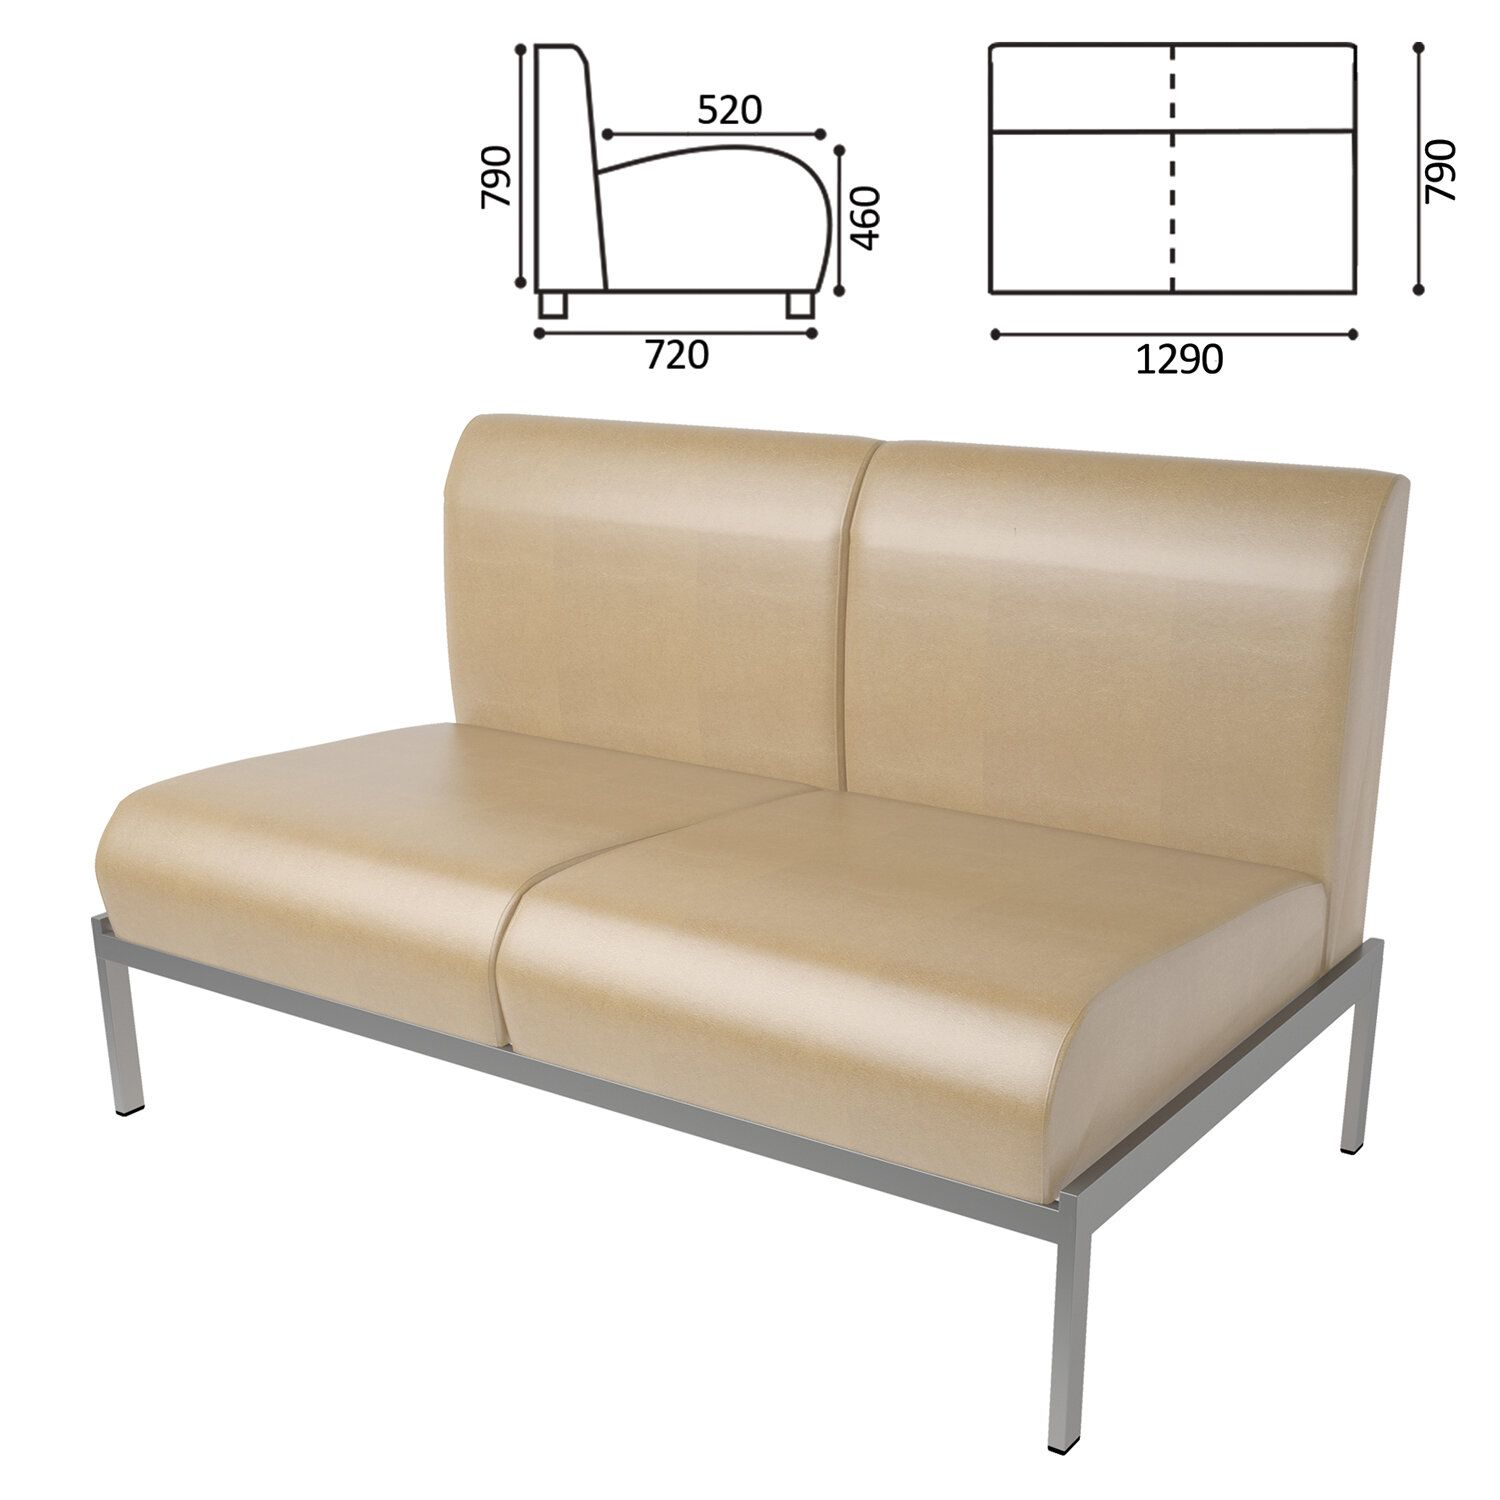 """COMFORUM / Soft double sofa """"Dylan"""", D-22, 1290х720х790 mm, without armrests, leatherette, beige"""